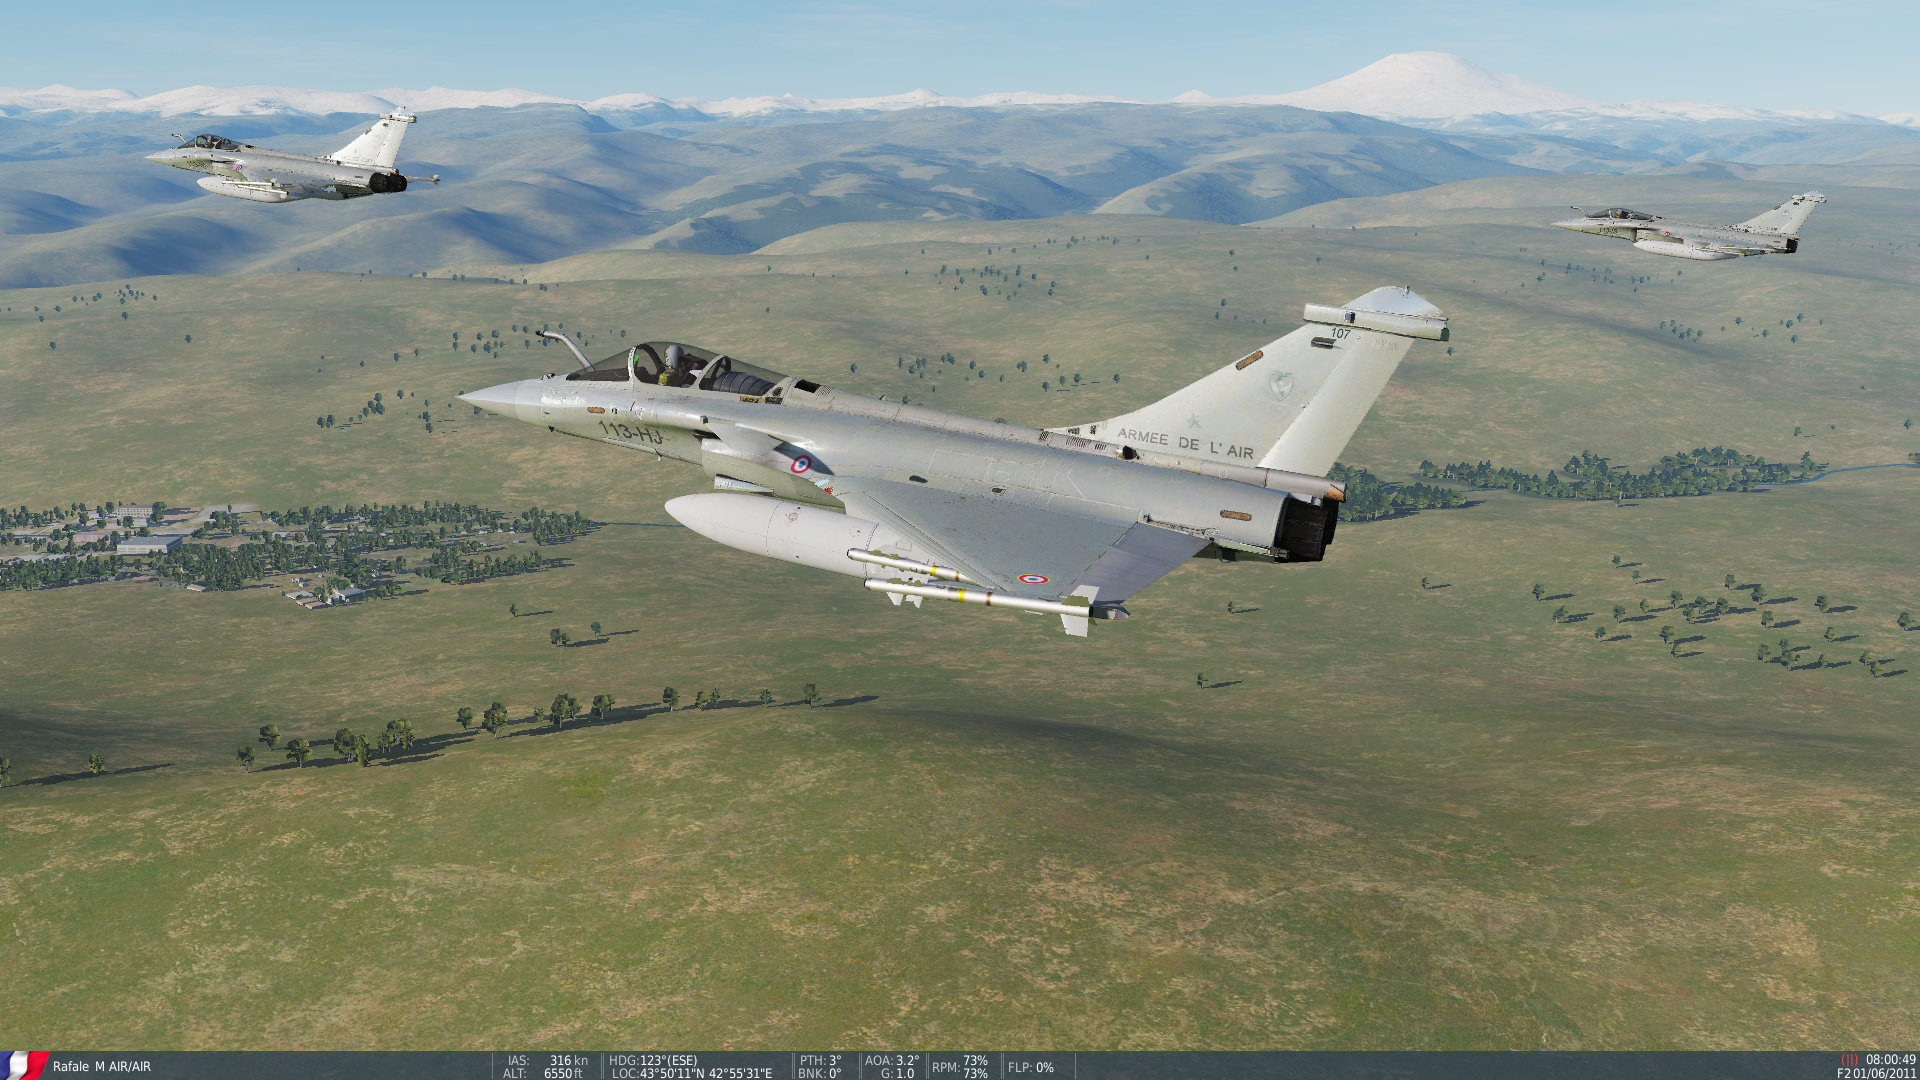 Armee de l'Air skins for DCS MOD RAFALES 2.5.5 BETA